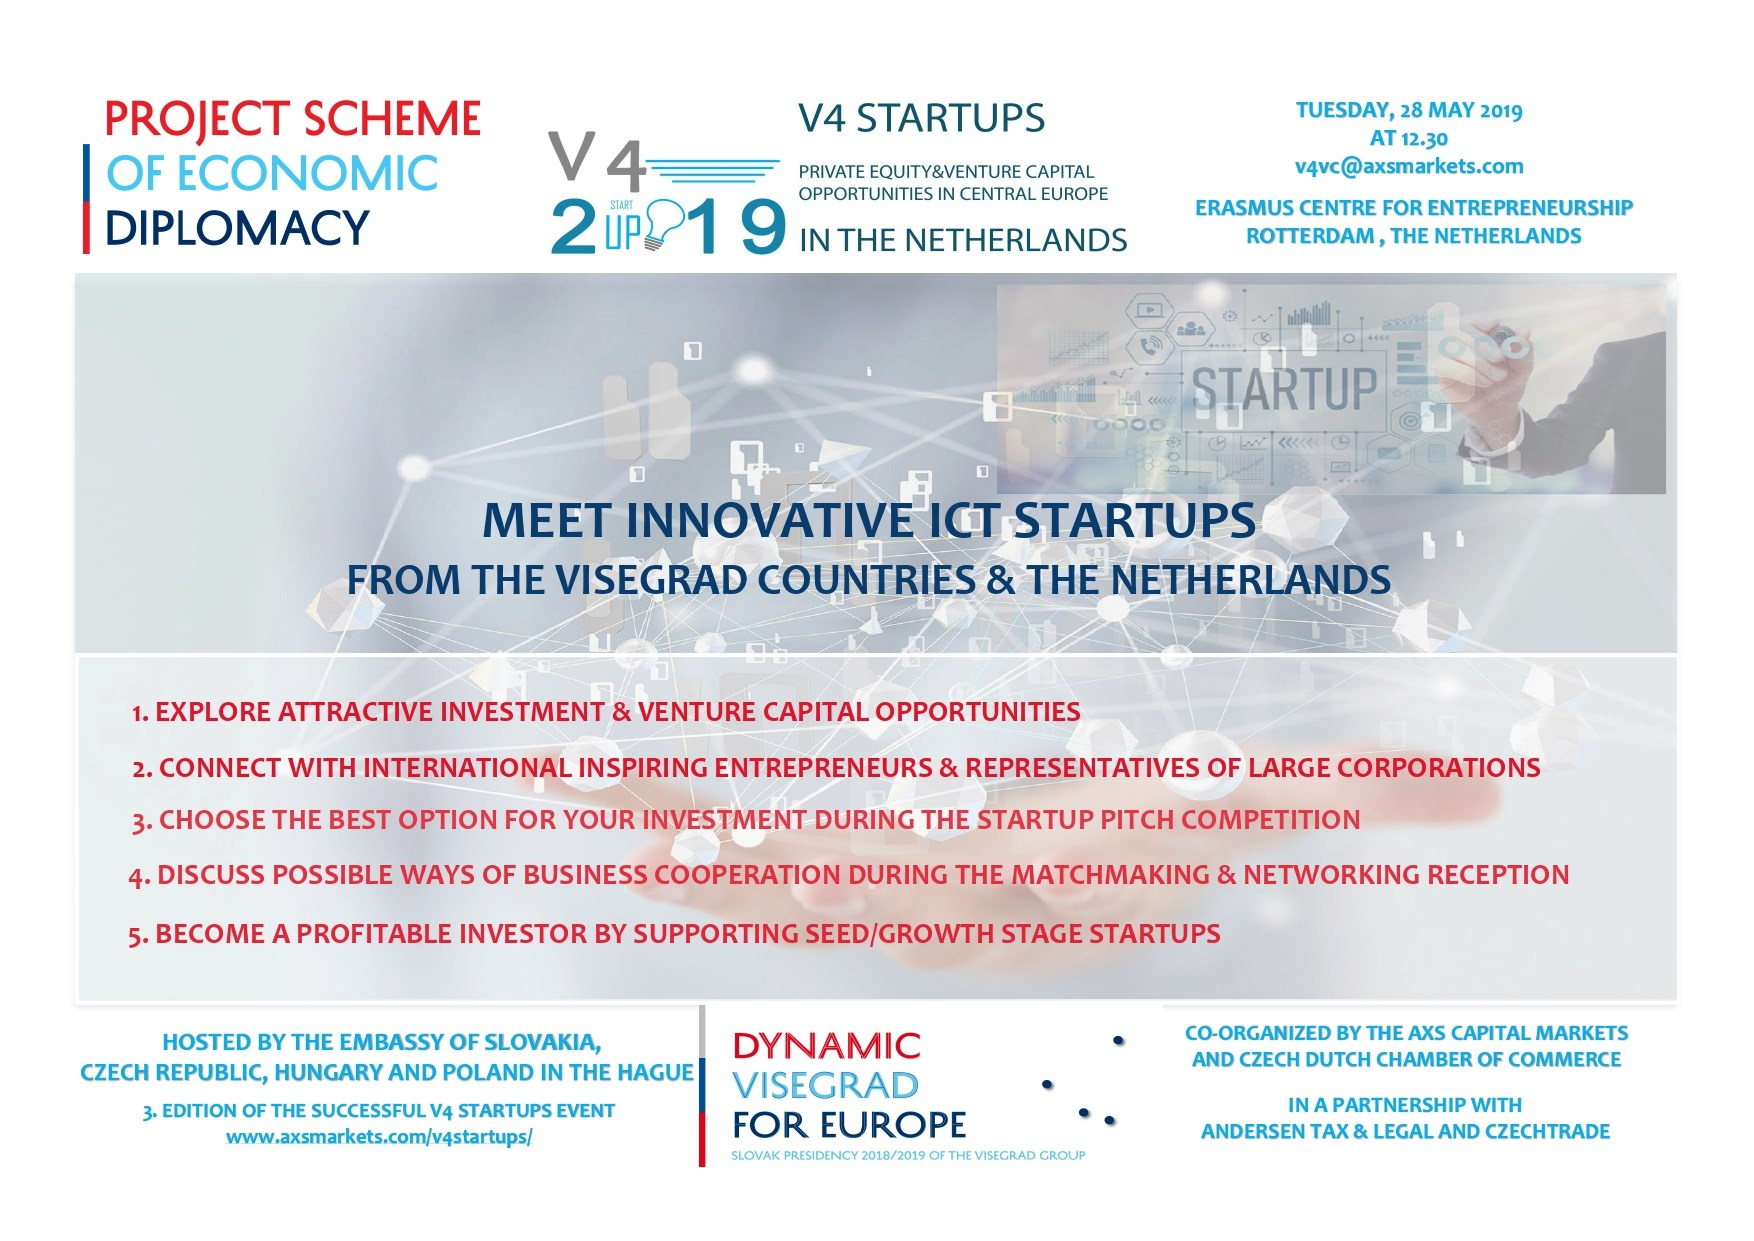 V4 Startups in the Netherlands